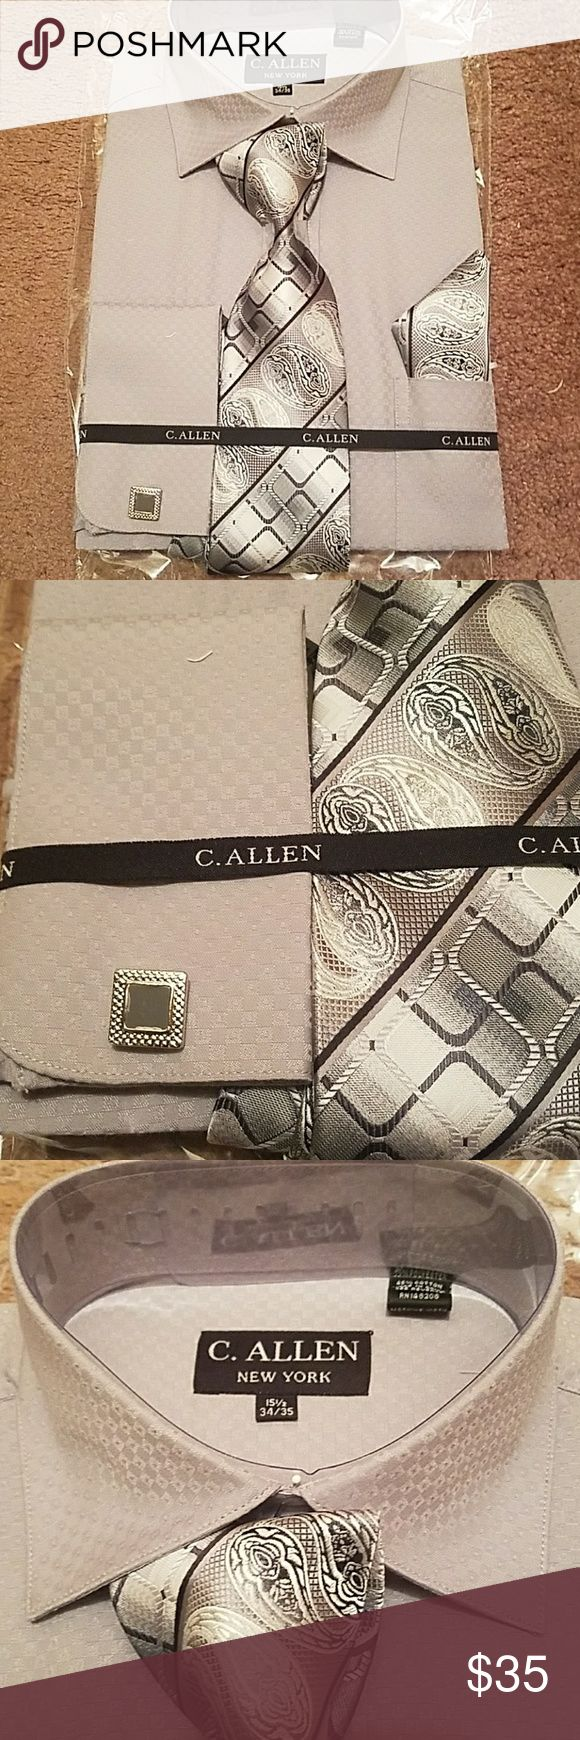 C Allen Gray Dress Shirt Set The Cufflinks Hanky M C Allen New York This is a set which comes with a tie a hankie and matching cufflinks for this dress shirt.  Size 15.5 34-35 Brand new in package C allen Shirts Dress Shirts